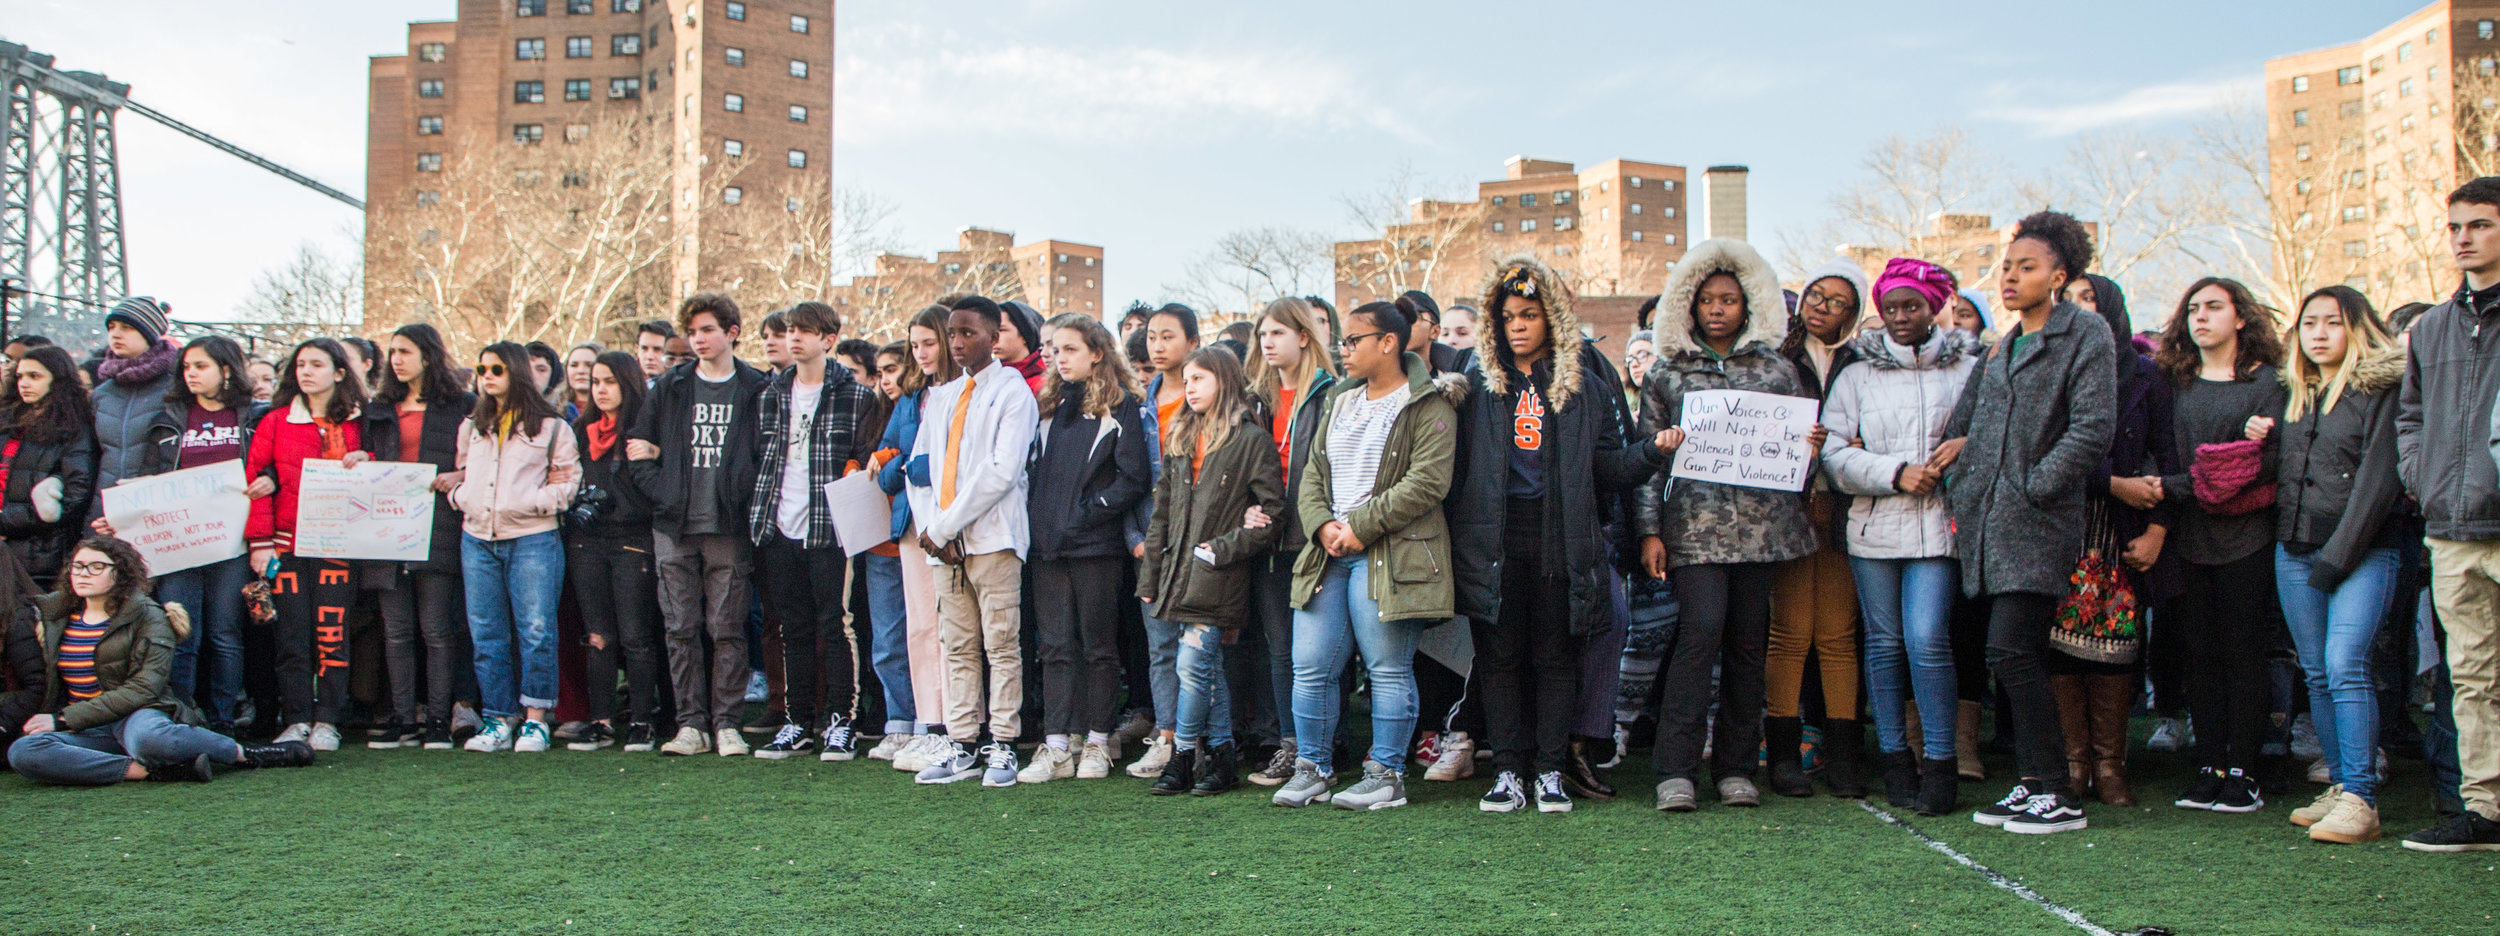 On March 14th, 2018, Students around the country walked out of their classrooms for 17 minutes, a minute for each victim in the Parkland, FL school shooting. Reading off the names of each victim, every student and administration gave a minute of silence. Attorney General Eric Schneiderman and his daugter Cat attended the vigil.